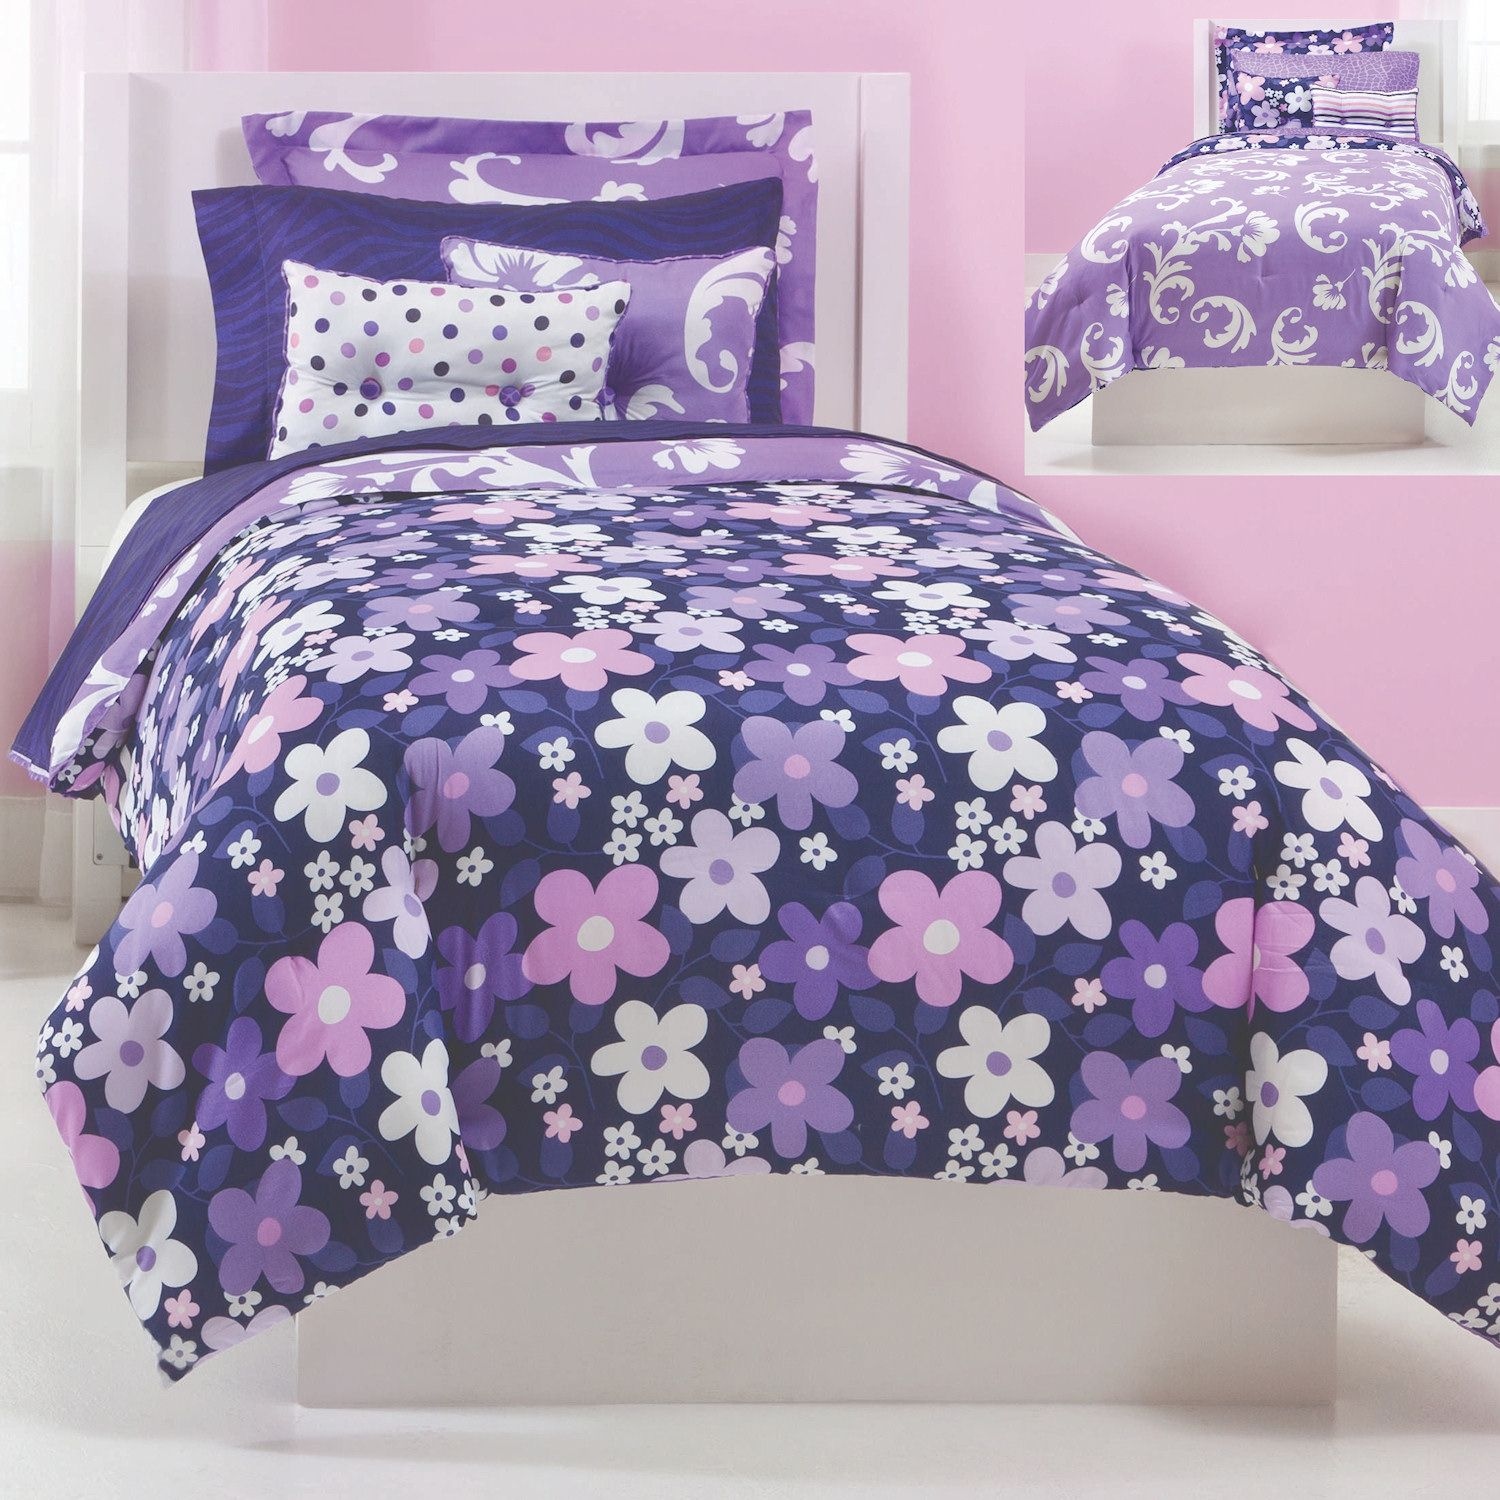 purple bedspreads for teenage girls